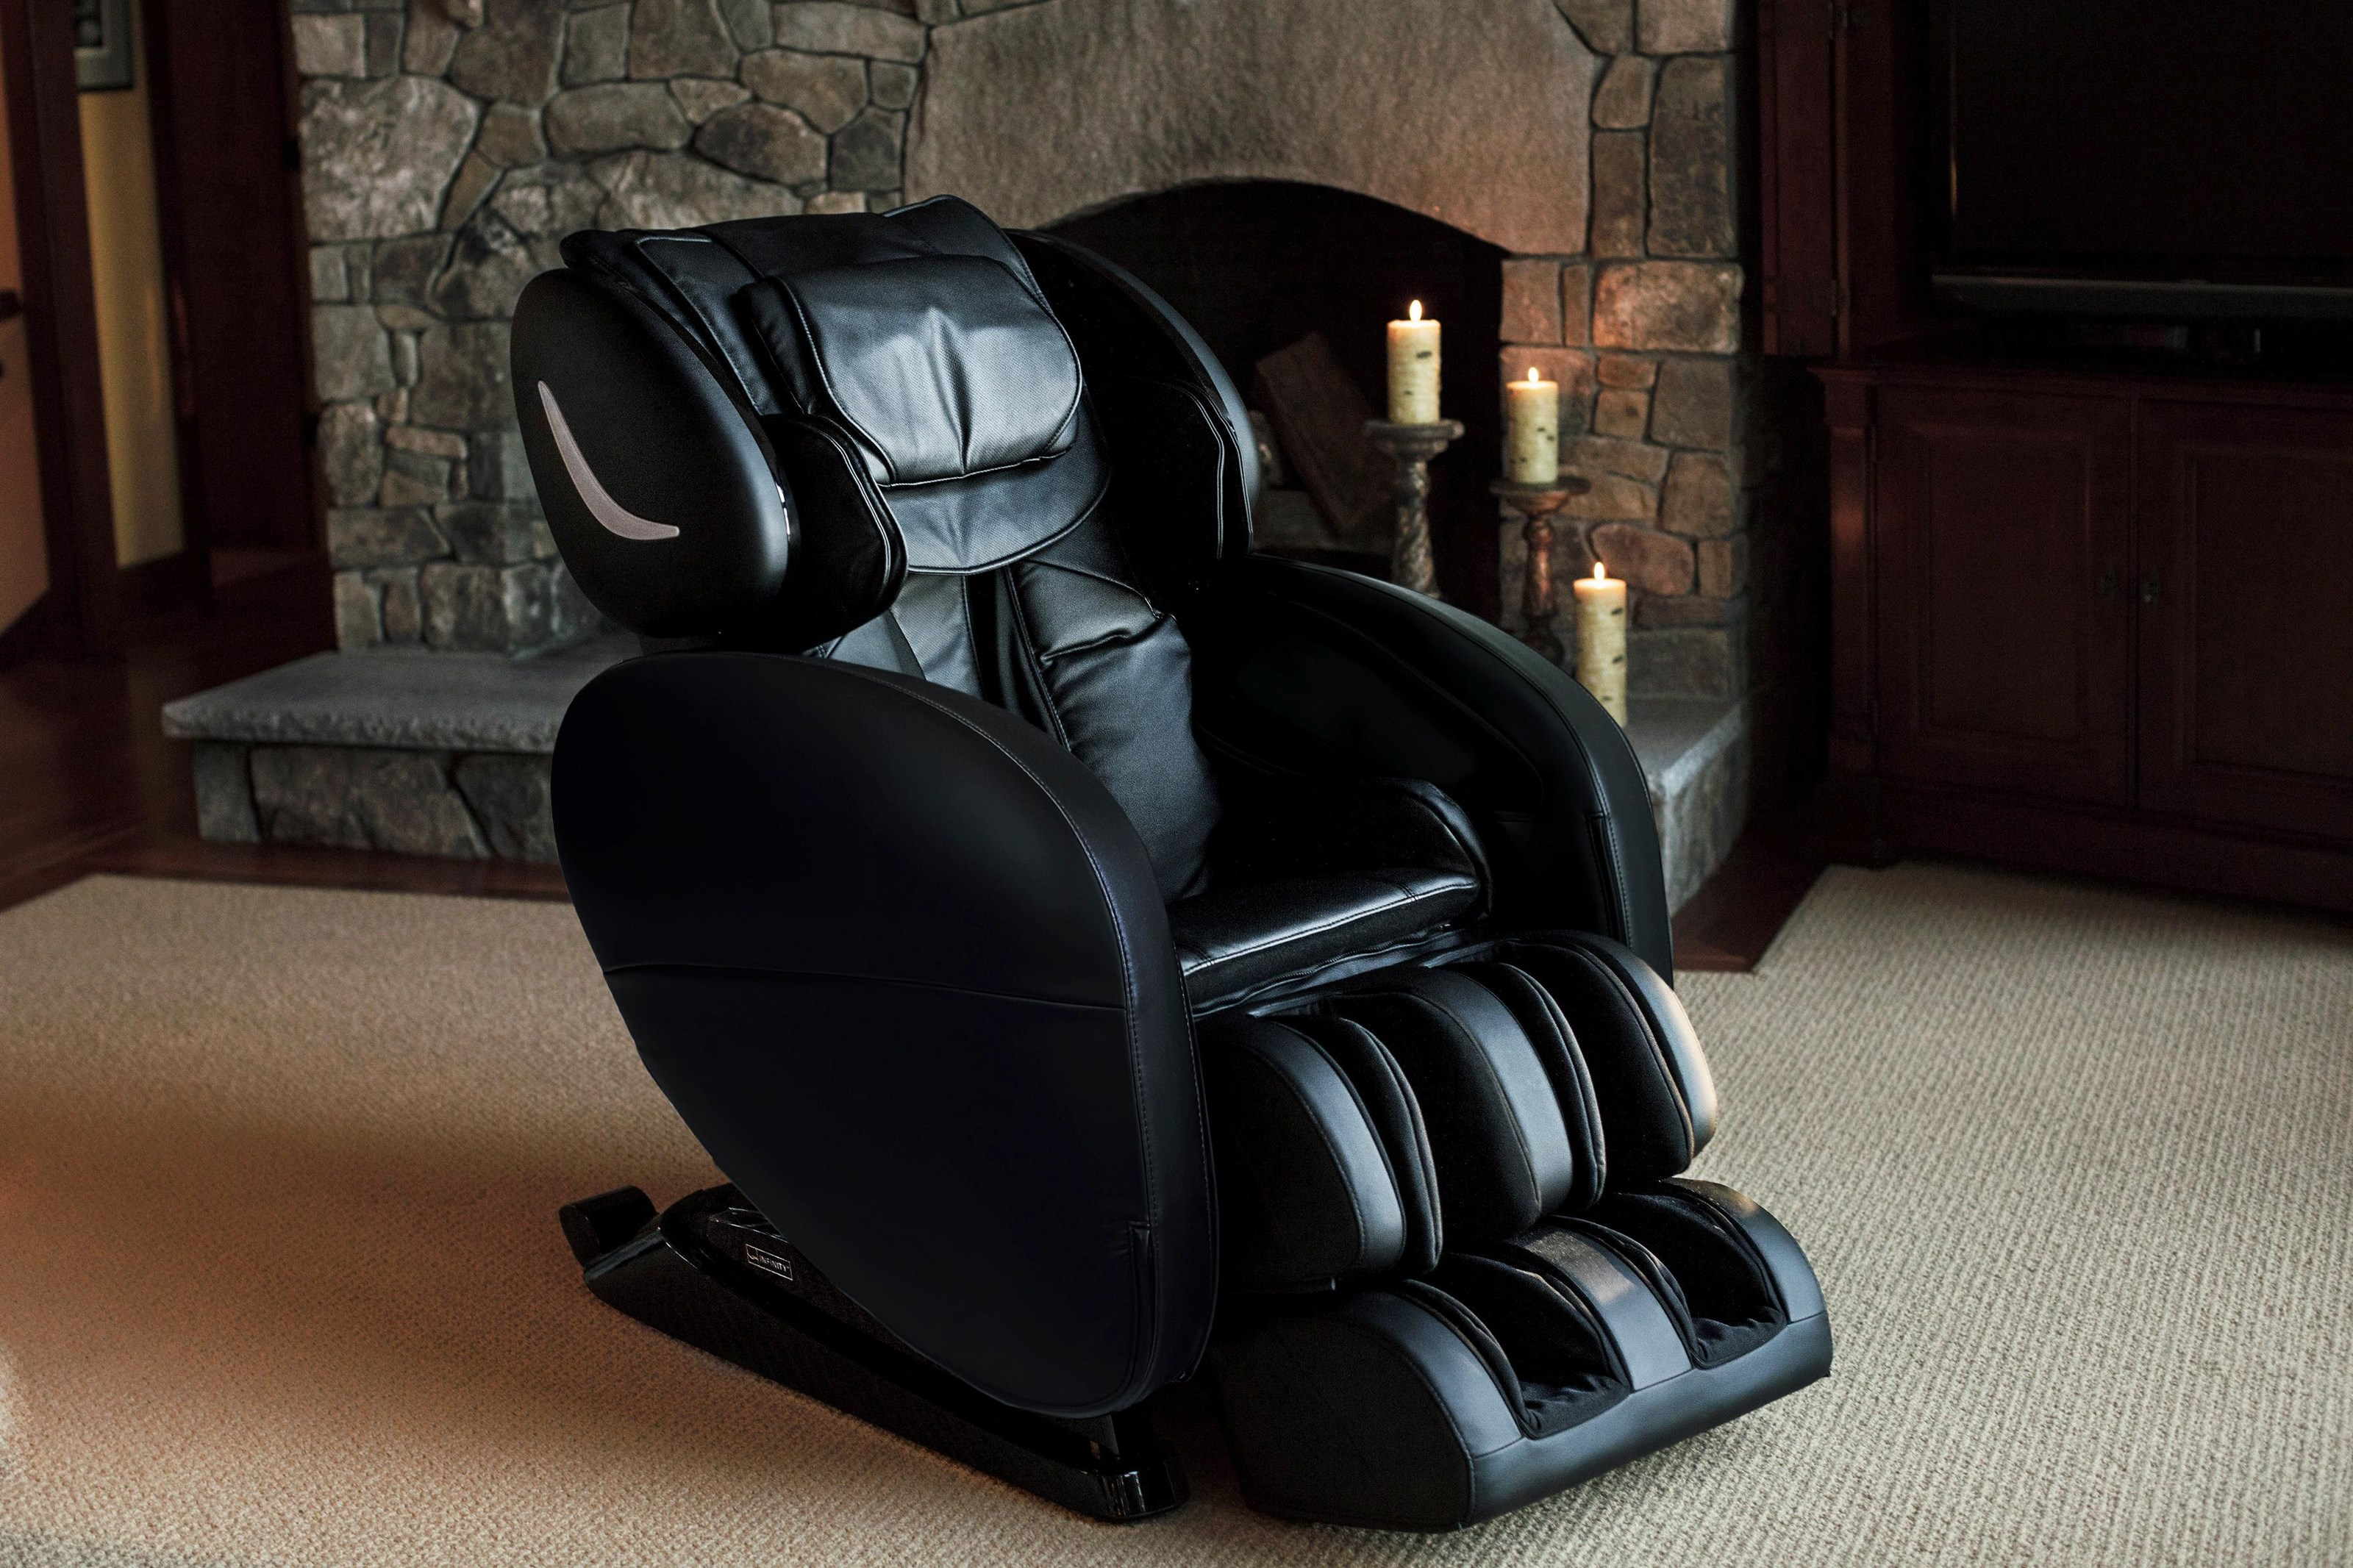 Smart Chair X3 Zero Gravity Reclining Massage Chair by Infinity at Rife's Home Furniture